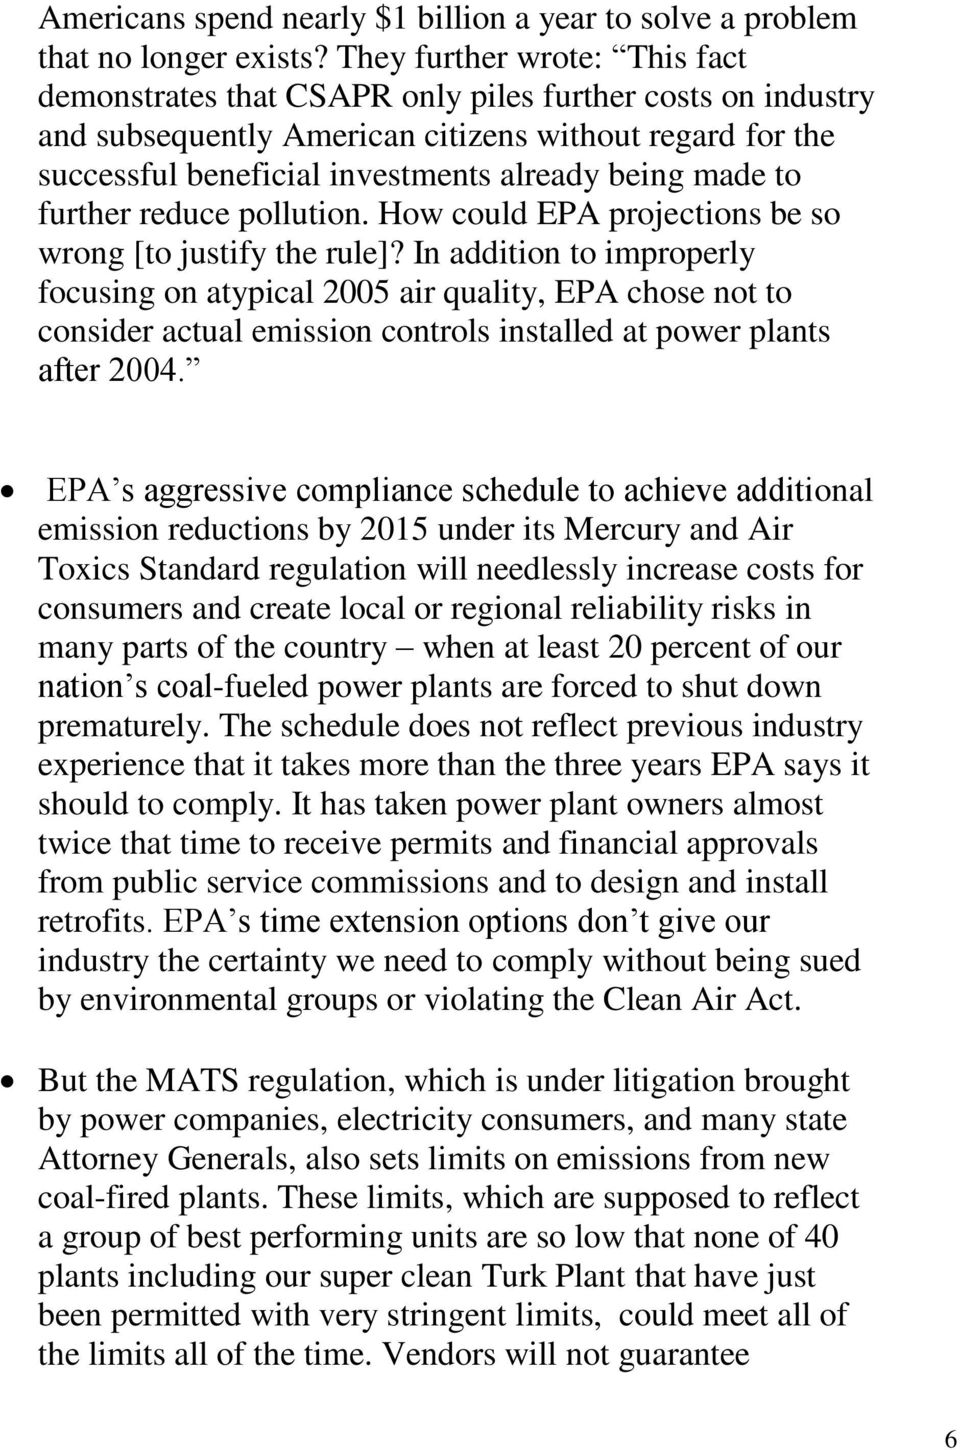 made to further reduce pollution. How could EPA projections be so wrong [to justify the rule]?